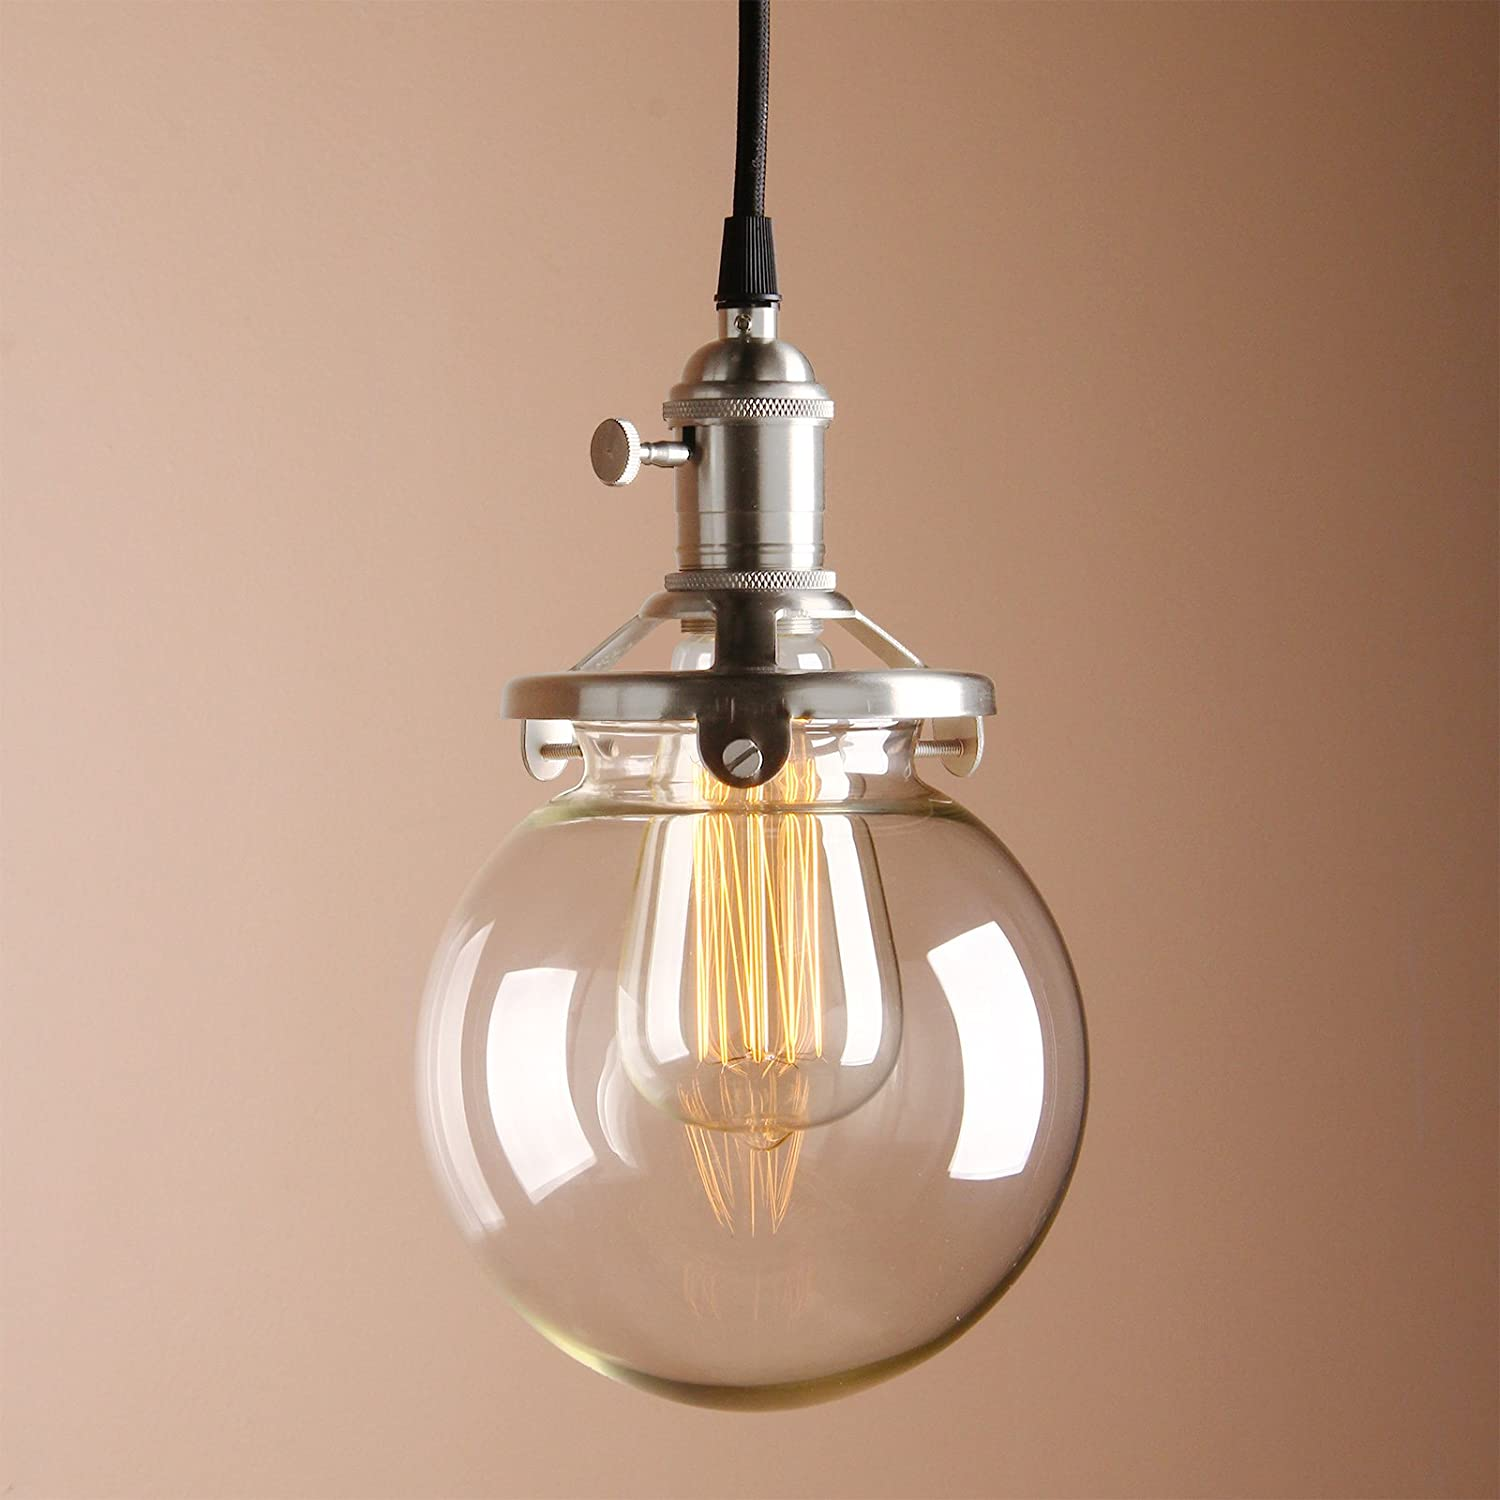 looking genius most table bulb marvelous fixtures ceiling light lamp pendant commercial edison industrial lighting lights